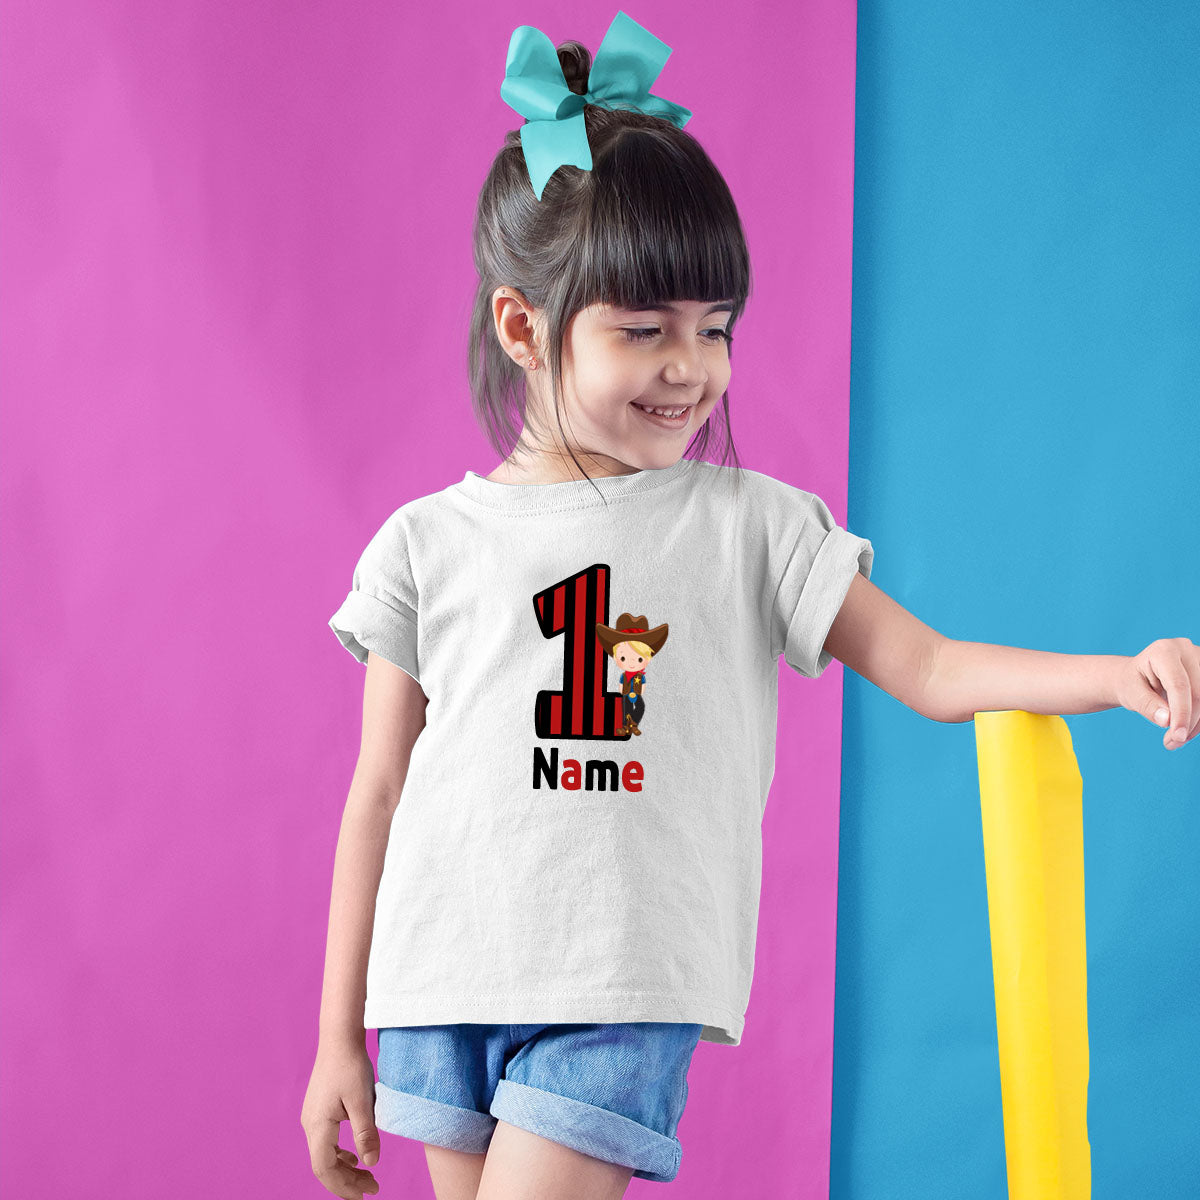 Sprinklecart First Birthday T Shirt with Pirate Theme | Customized Name and Age Printed Tee Wear